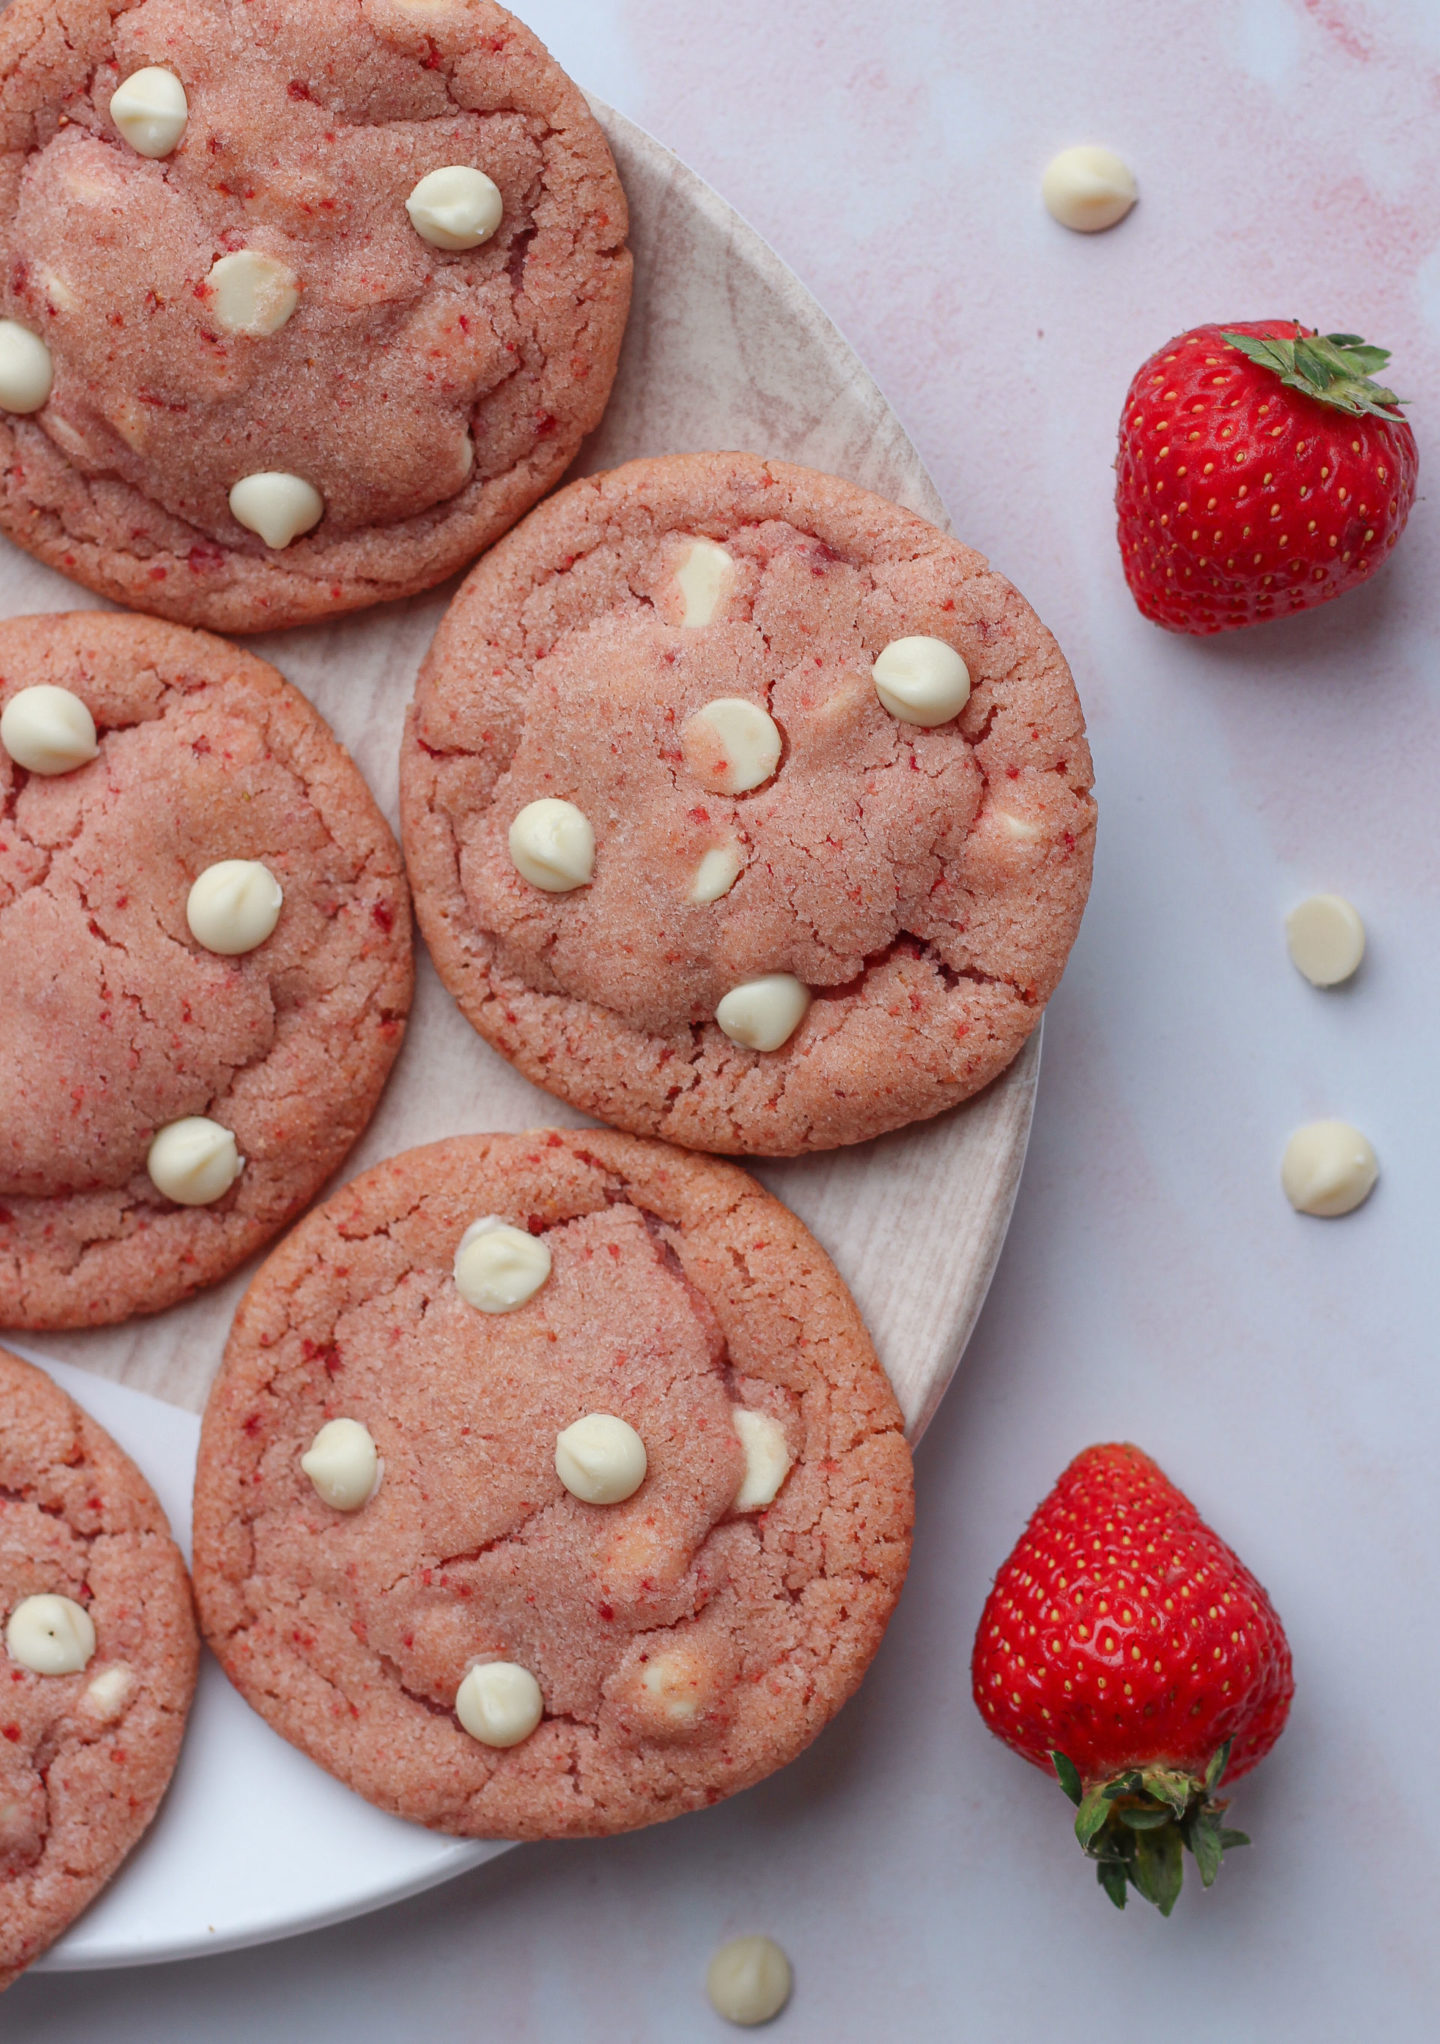 view from above of half a plate of strawberry white chocolate cookies